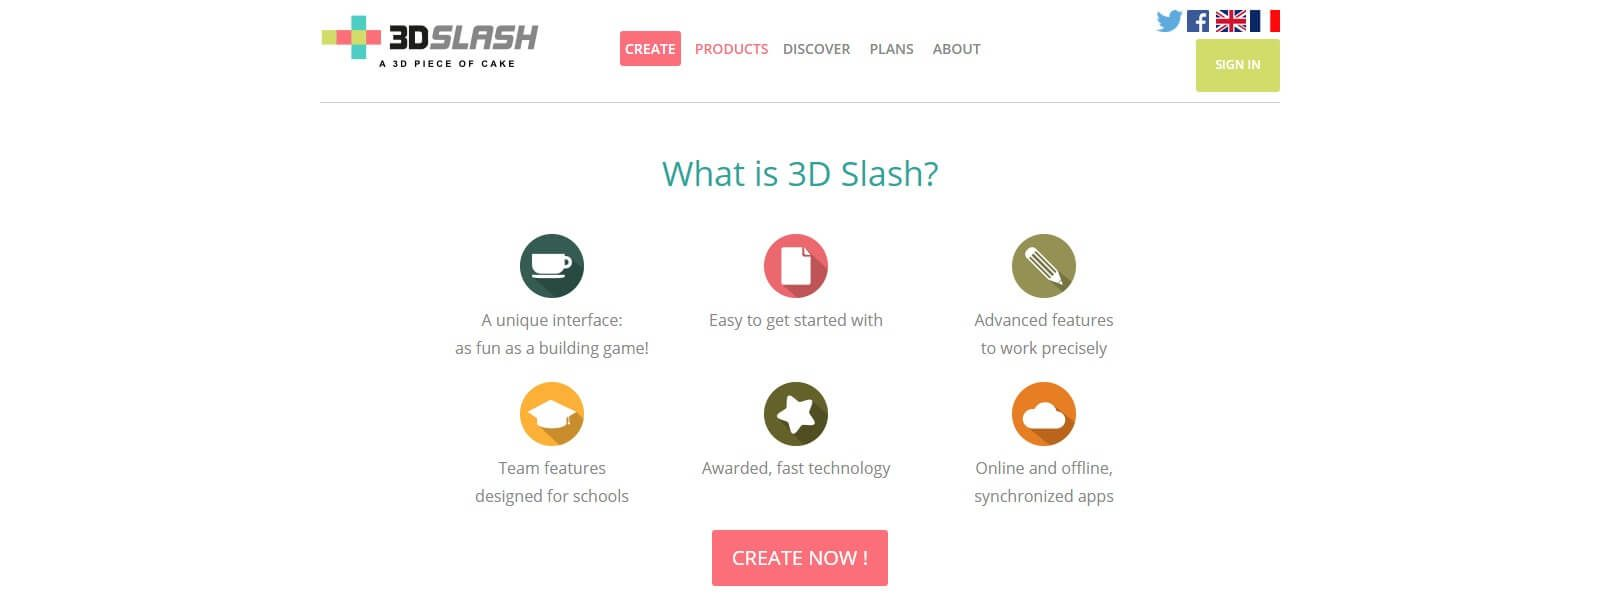 3D Slash - a 3D piece of cake - www.3dslash.net